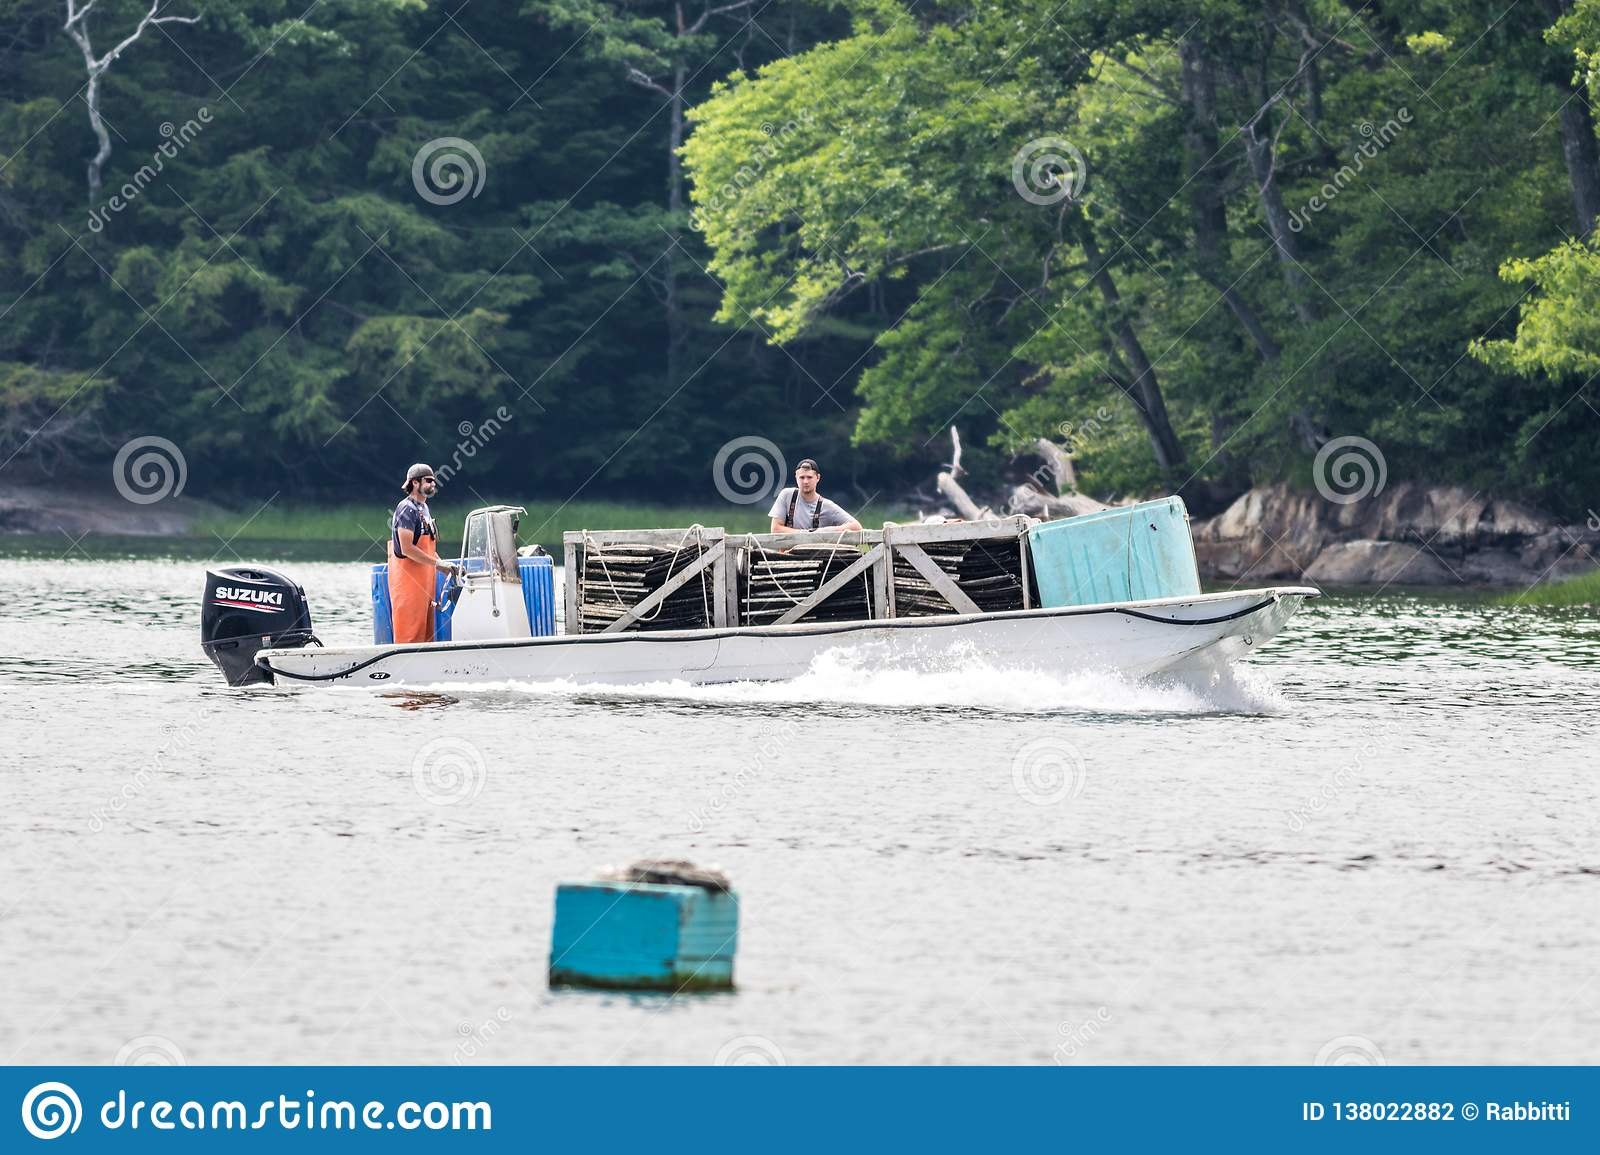 Damariscotta, Maine, USA - July 2, 2018: Oyster Farming In